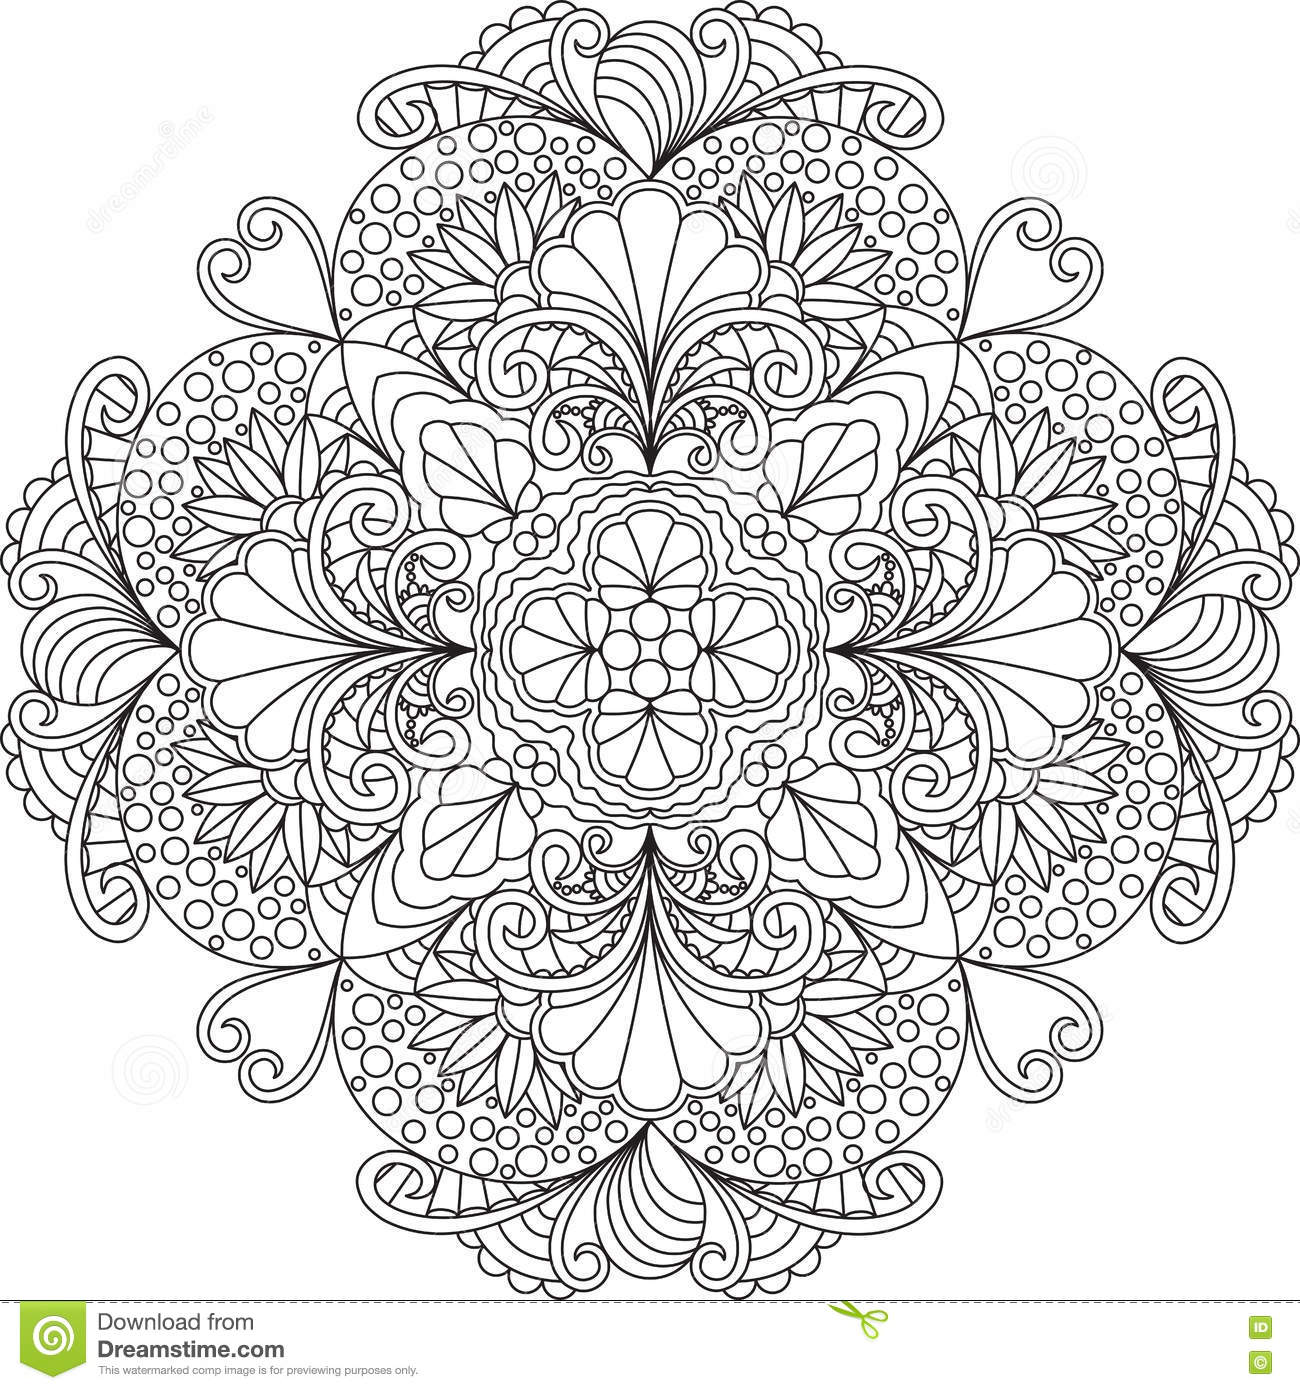 Zentangle Adult Coloring Page Mandala With Flowers Stock Vector